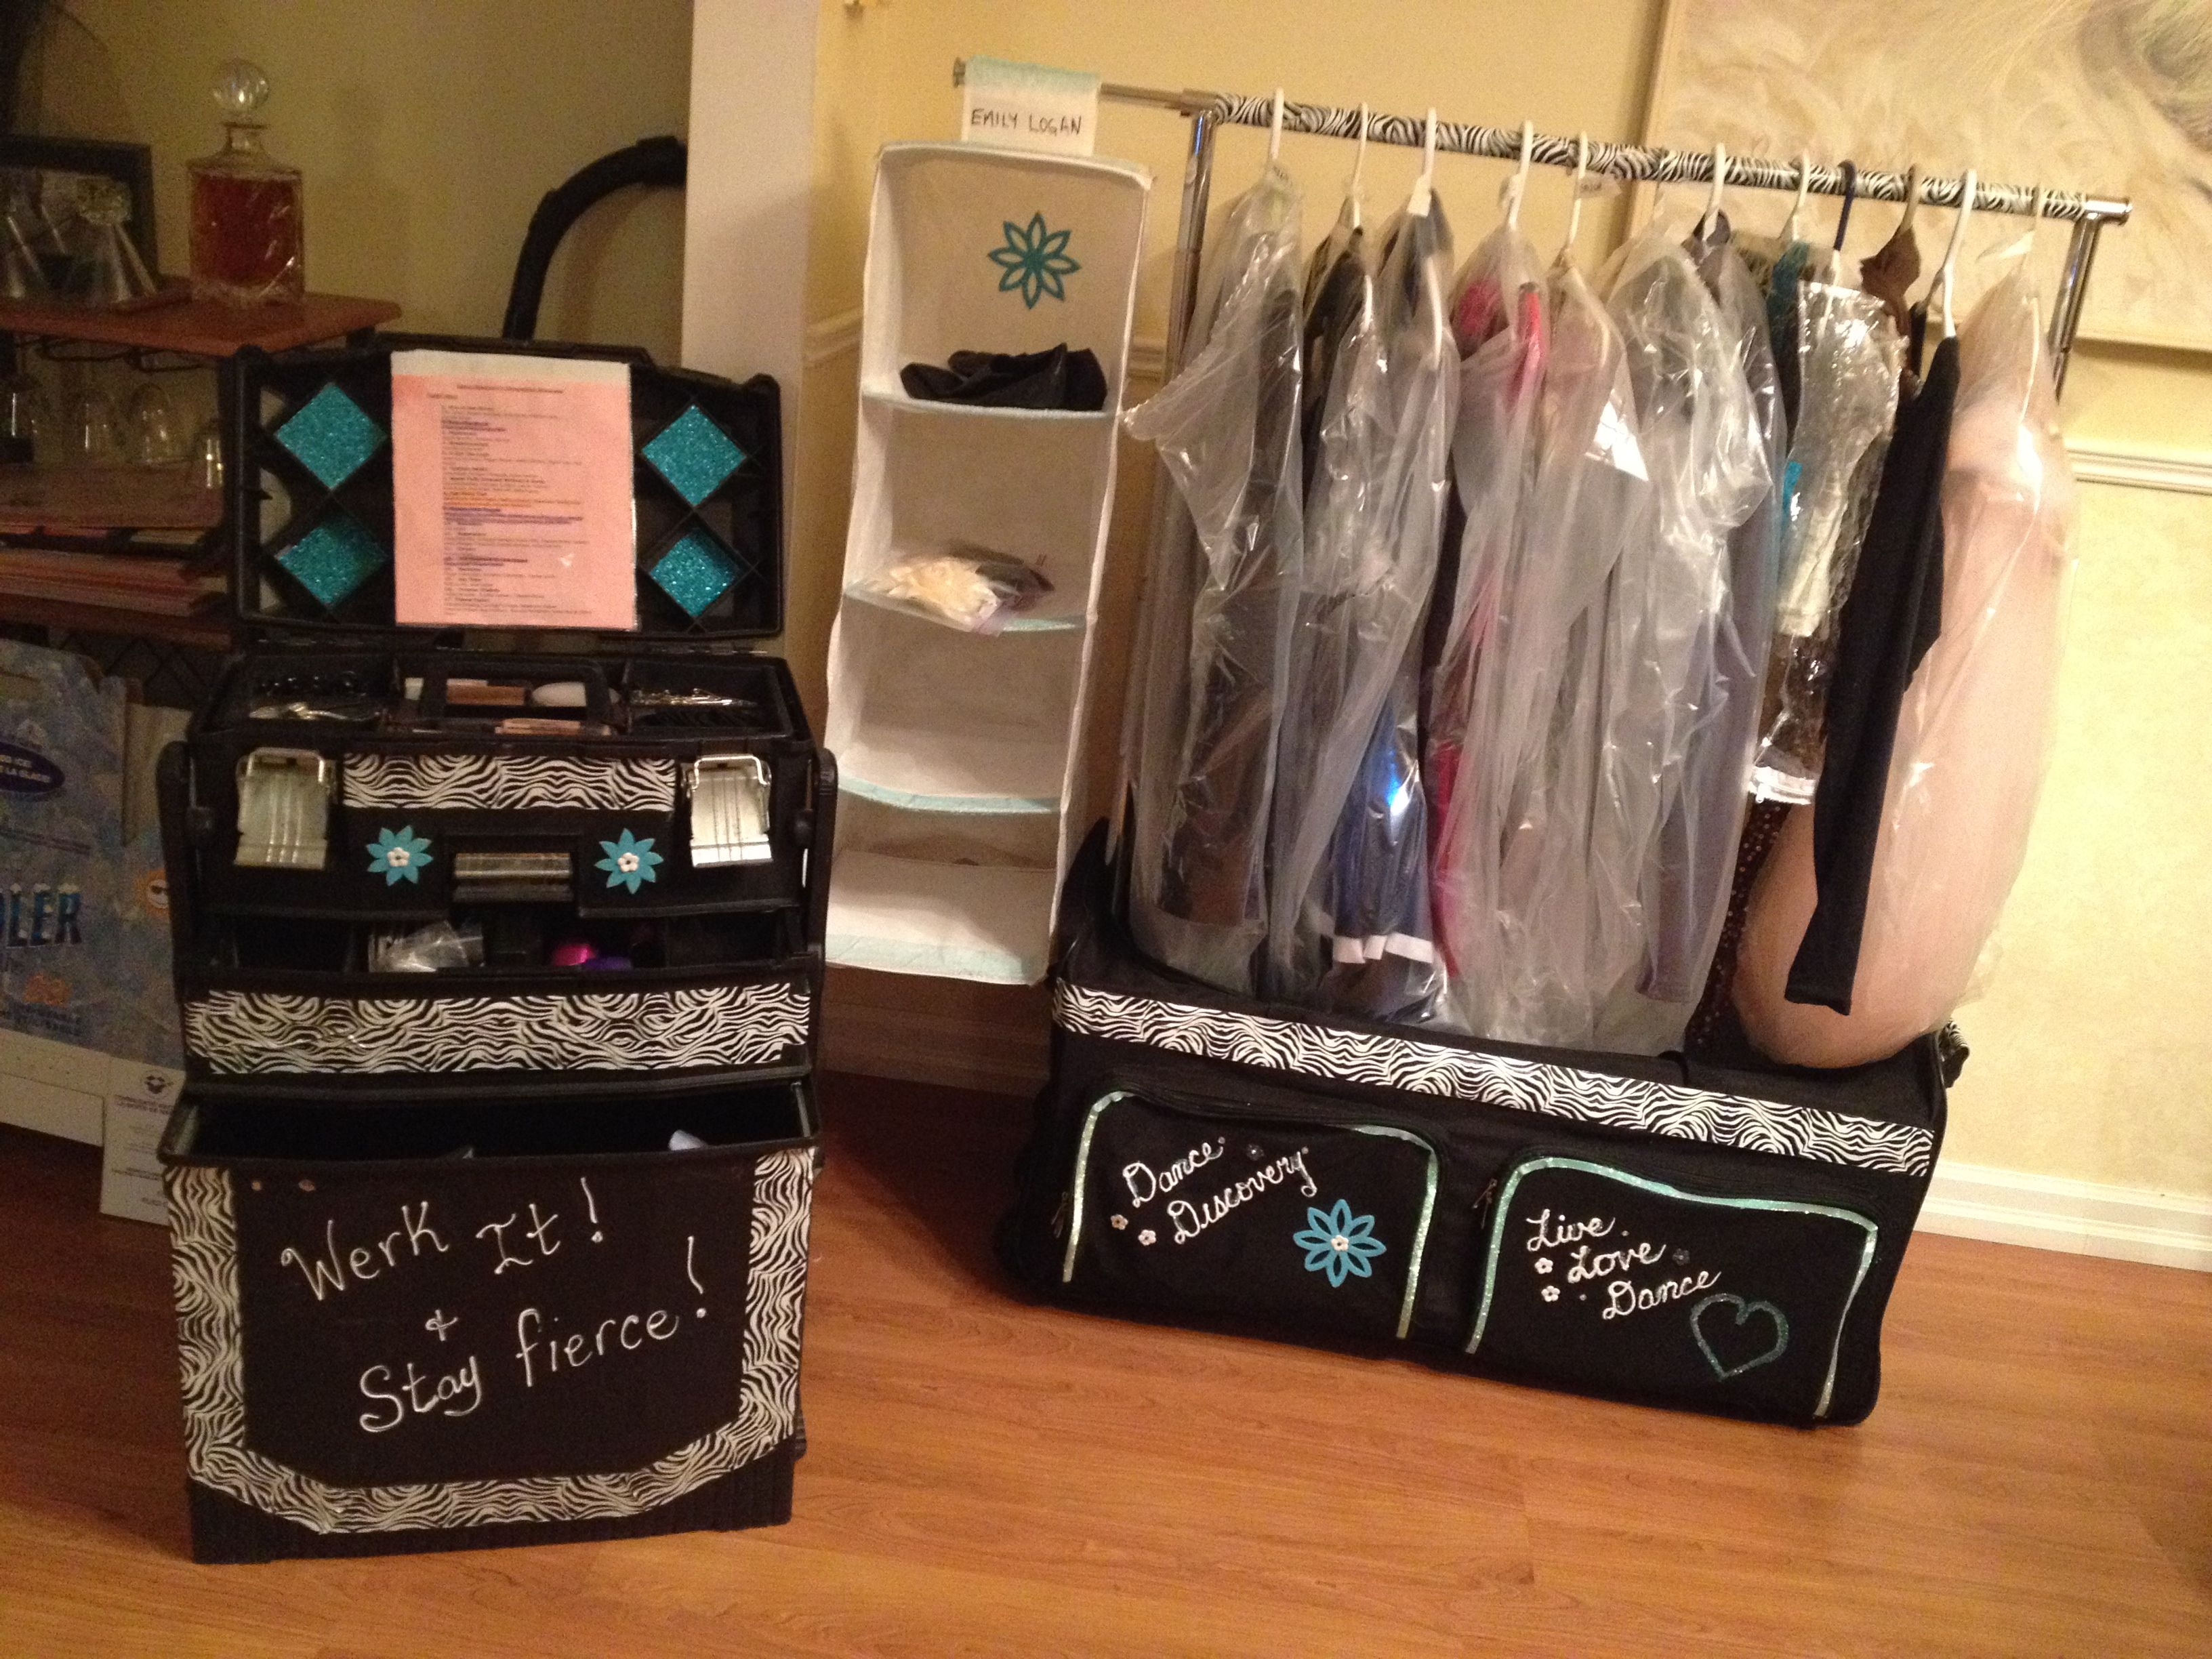 Dance Costume Rack And Rolling Make Up Case With Cooler In It Too Solid Sy Cheap Under For All Even Comes A Mirror That Hangs On The